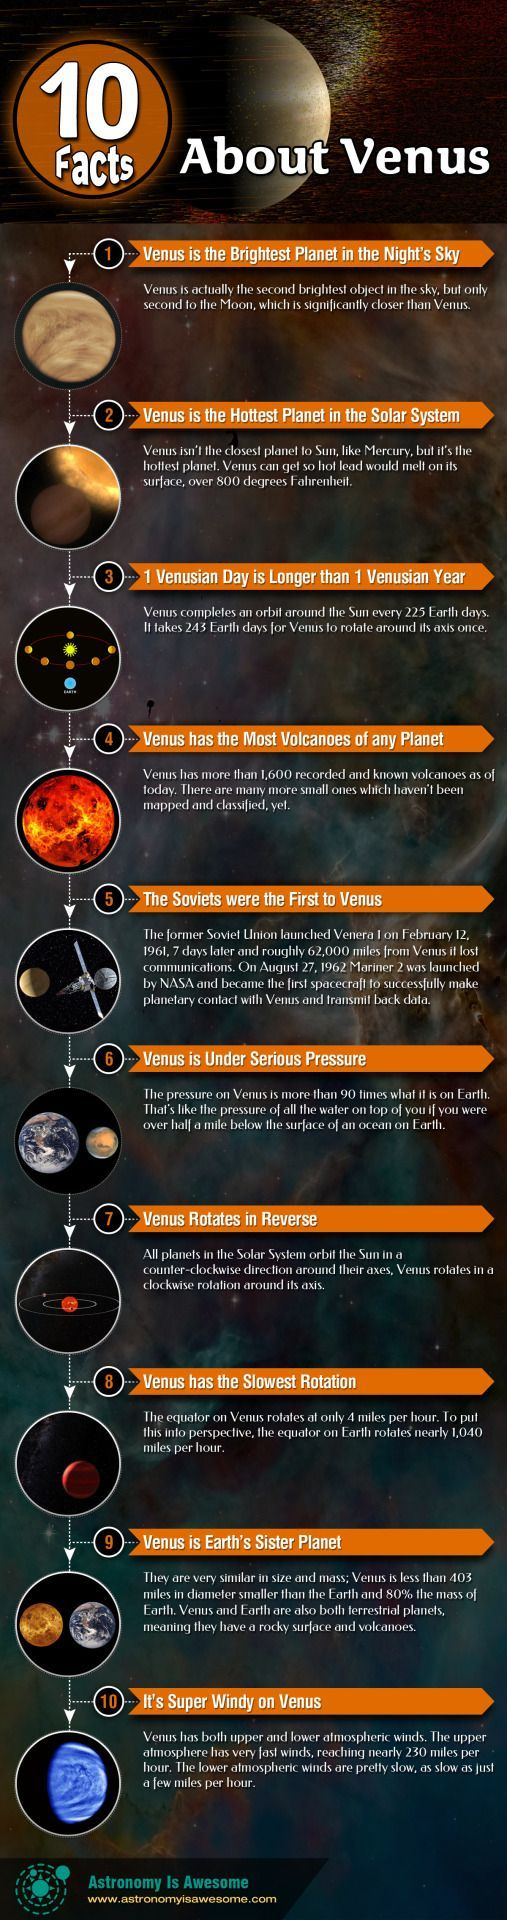 Check out our 10 Facts About Venus #infographic! http://astronomyisawesome.com/infographics/10-facts-about-venus/ Everybody loves #Venus, maybe it's because she's the only planet in our Solar System...